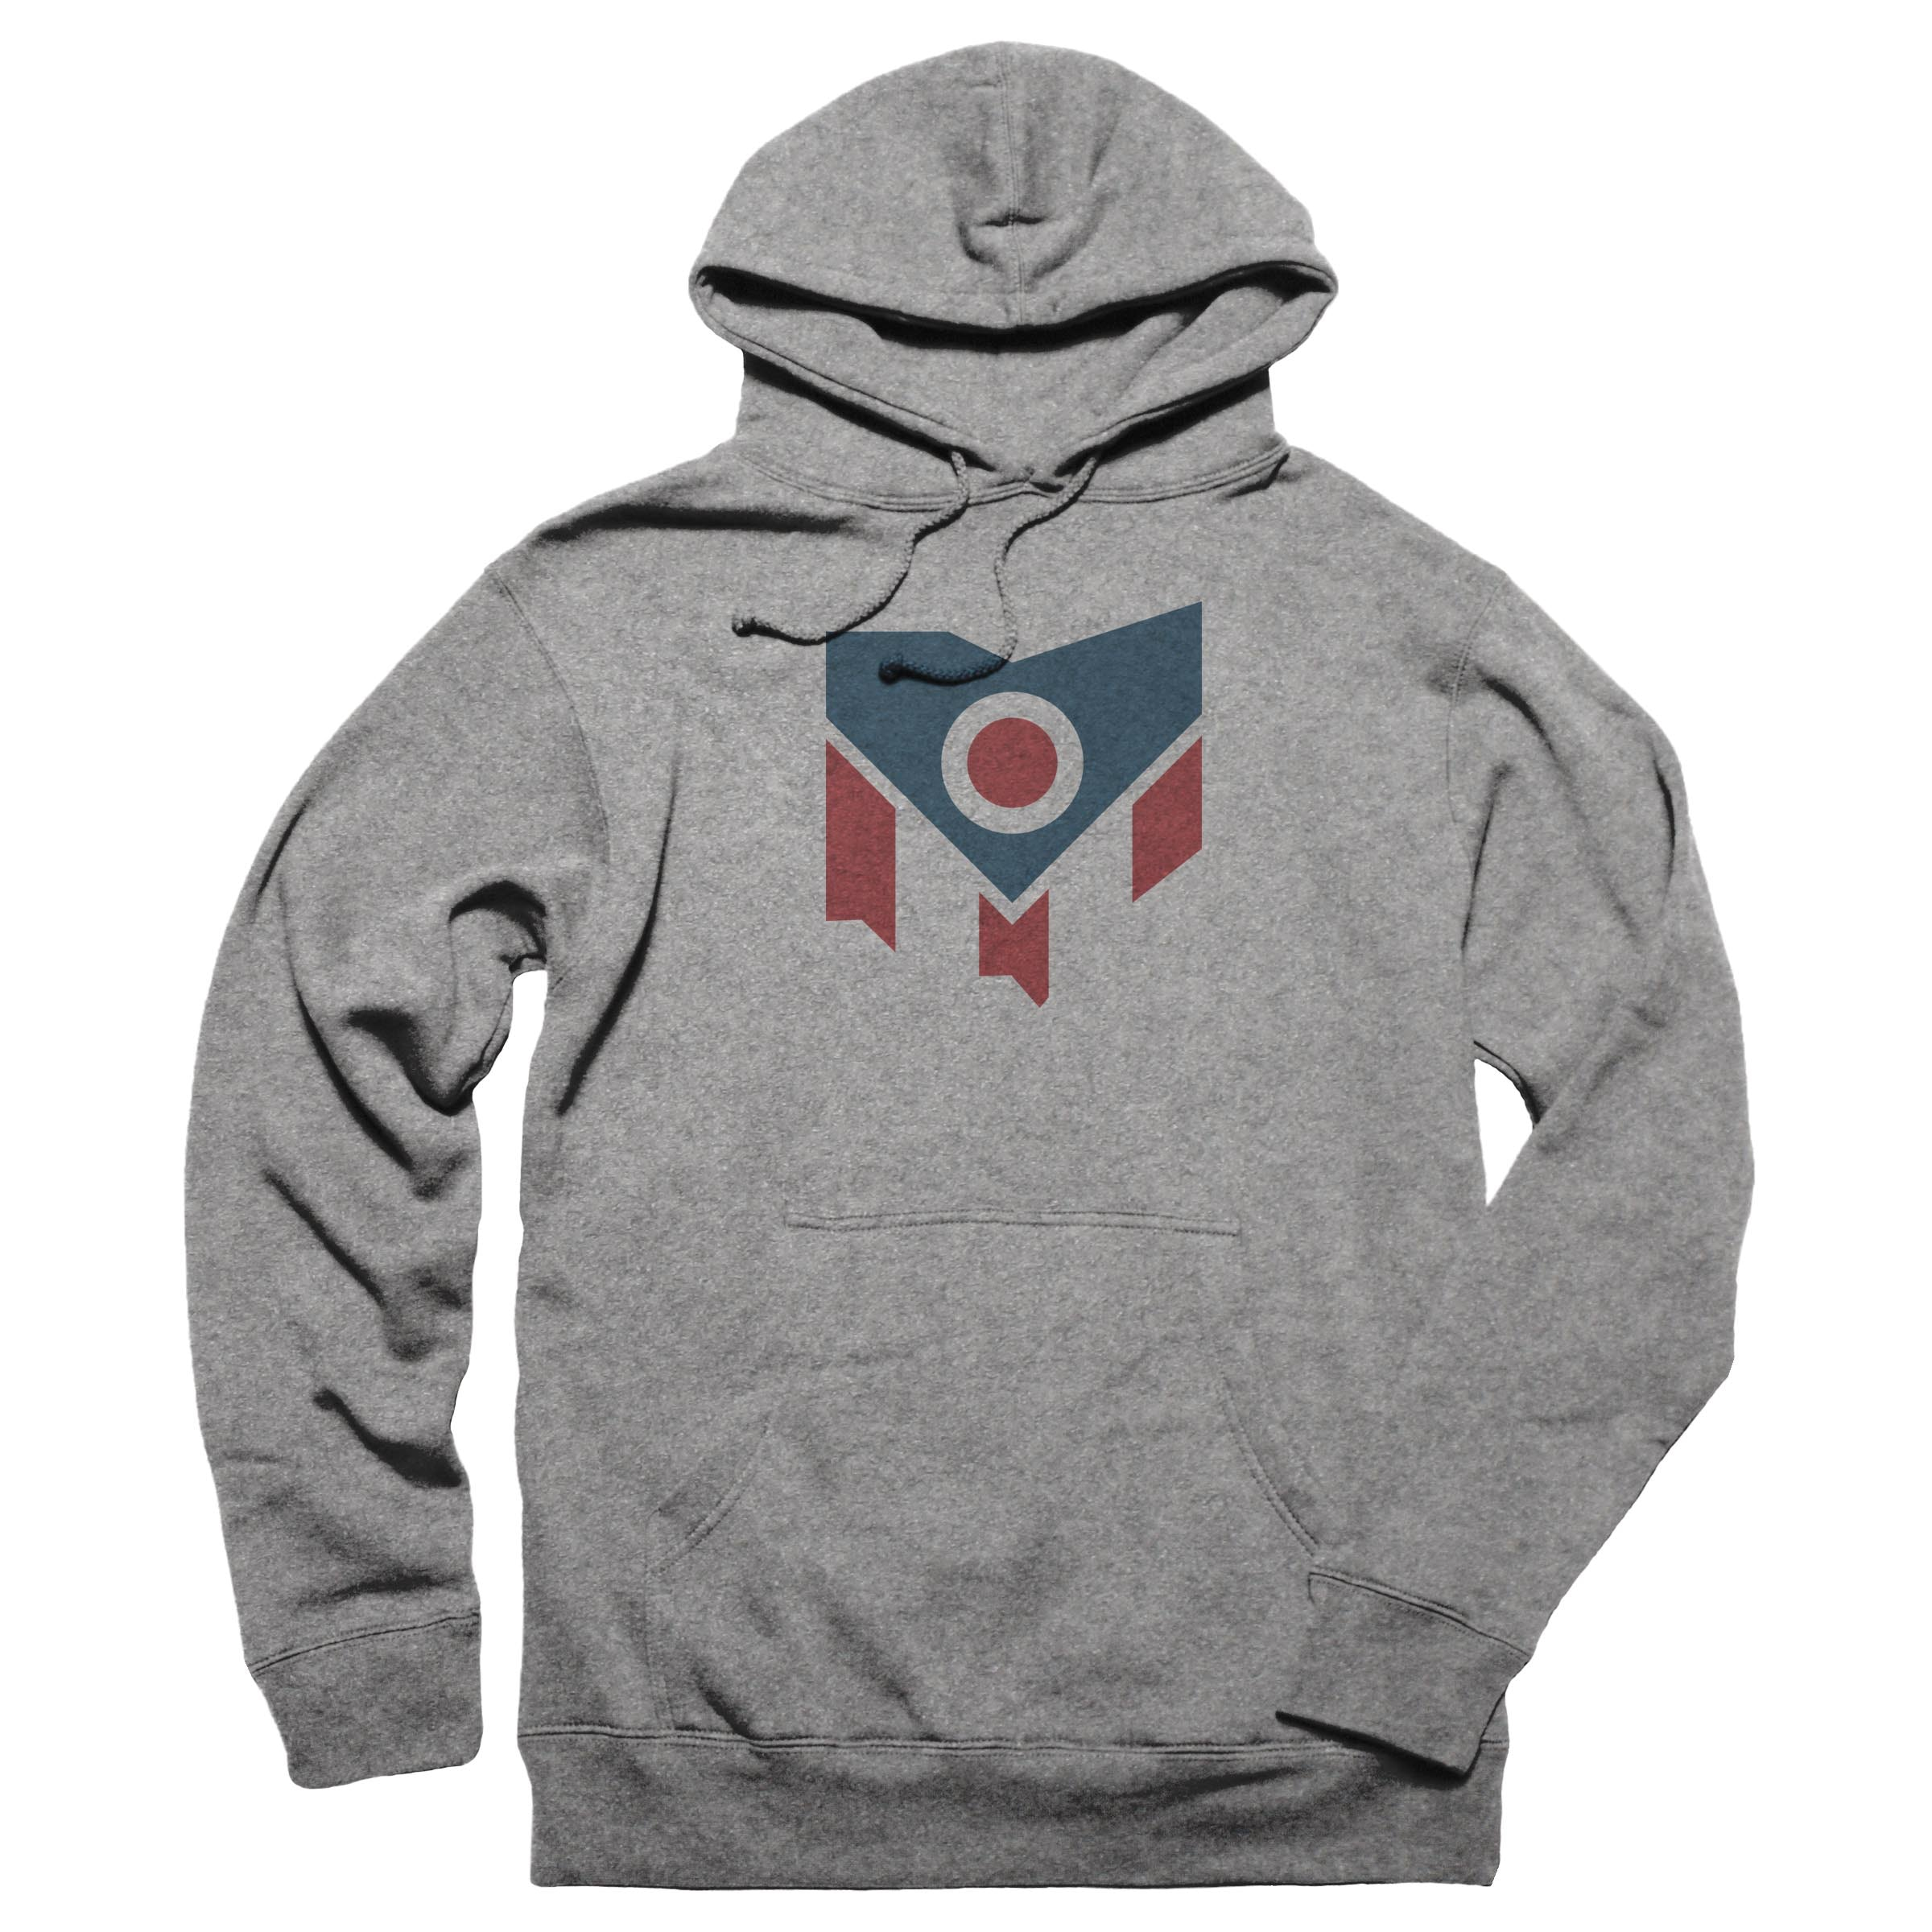 For the Love of Ohio Pullover Hoodie